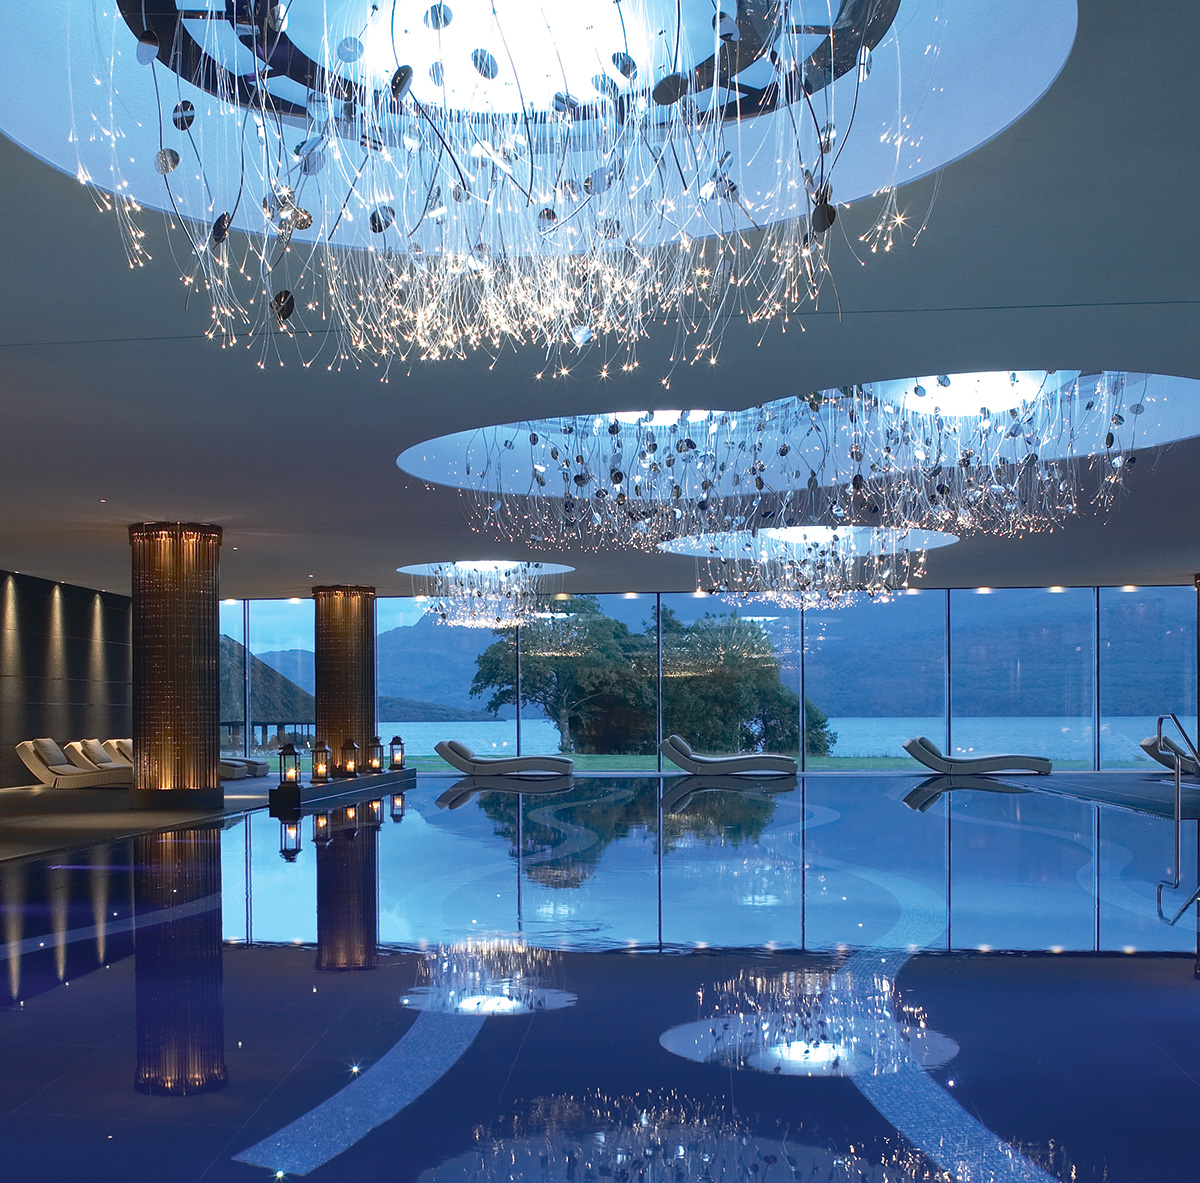 ESPA, Hotel Europe, Killarney by Design: Hirsch Bedner Associates